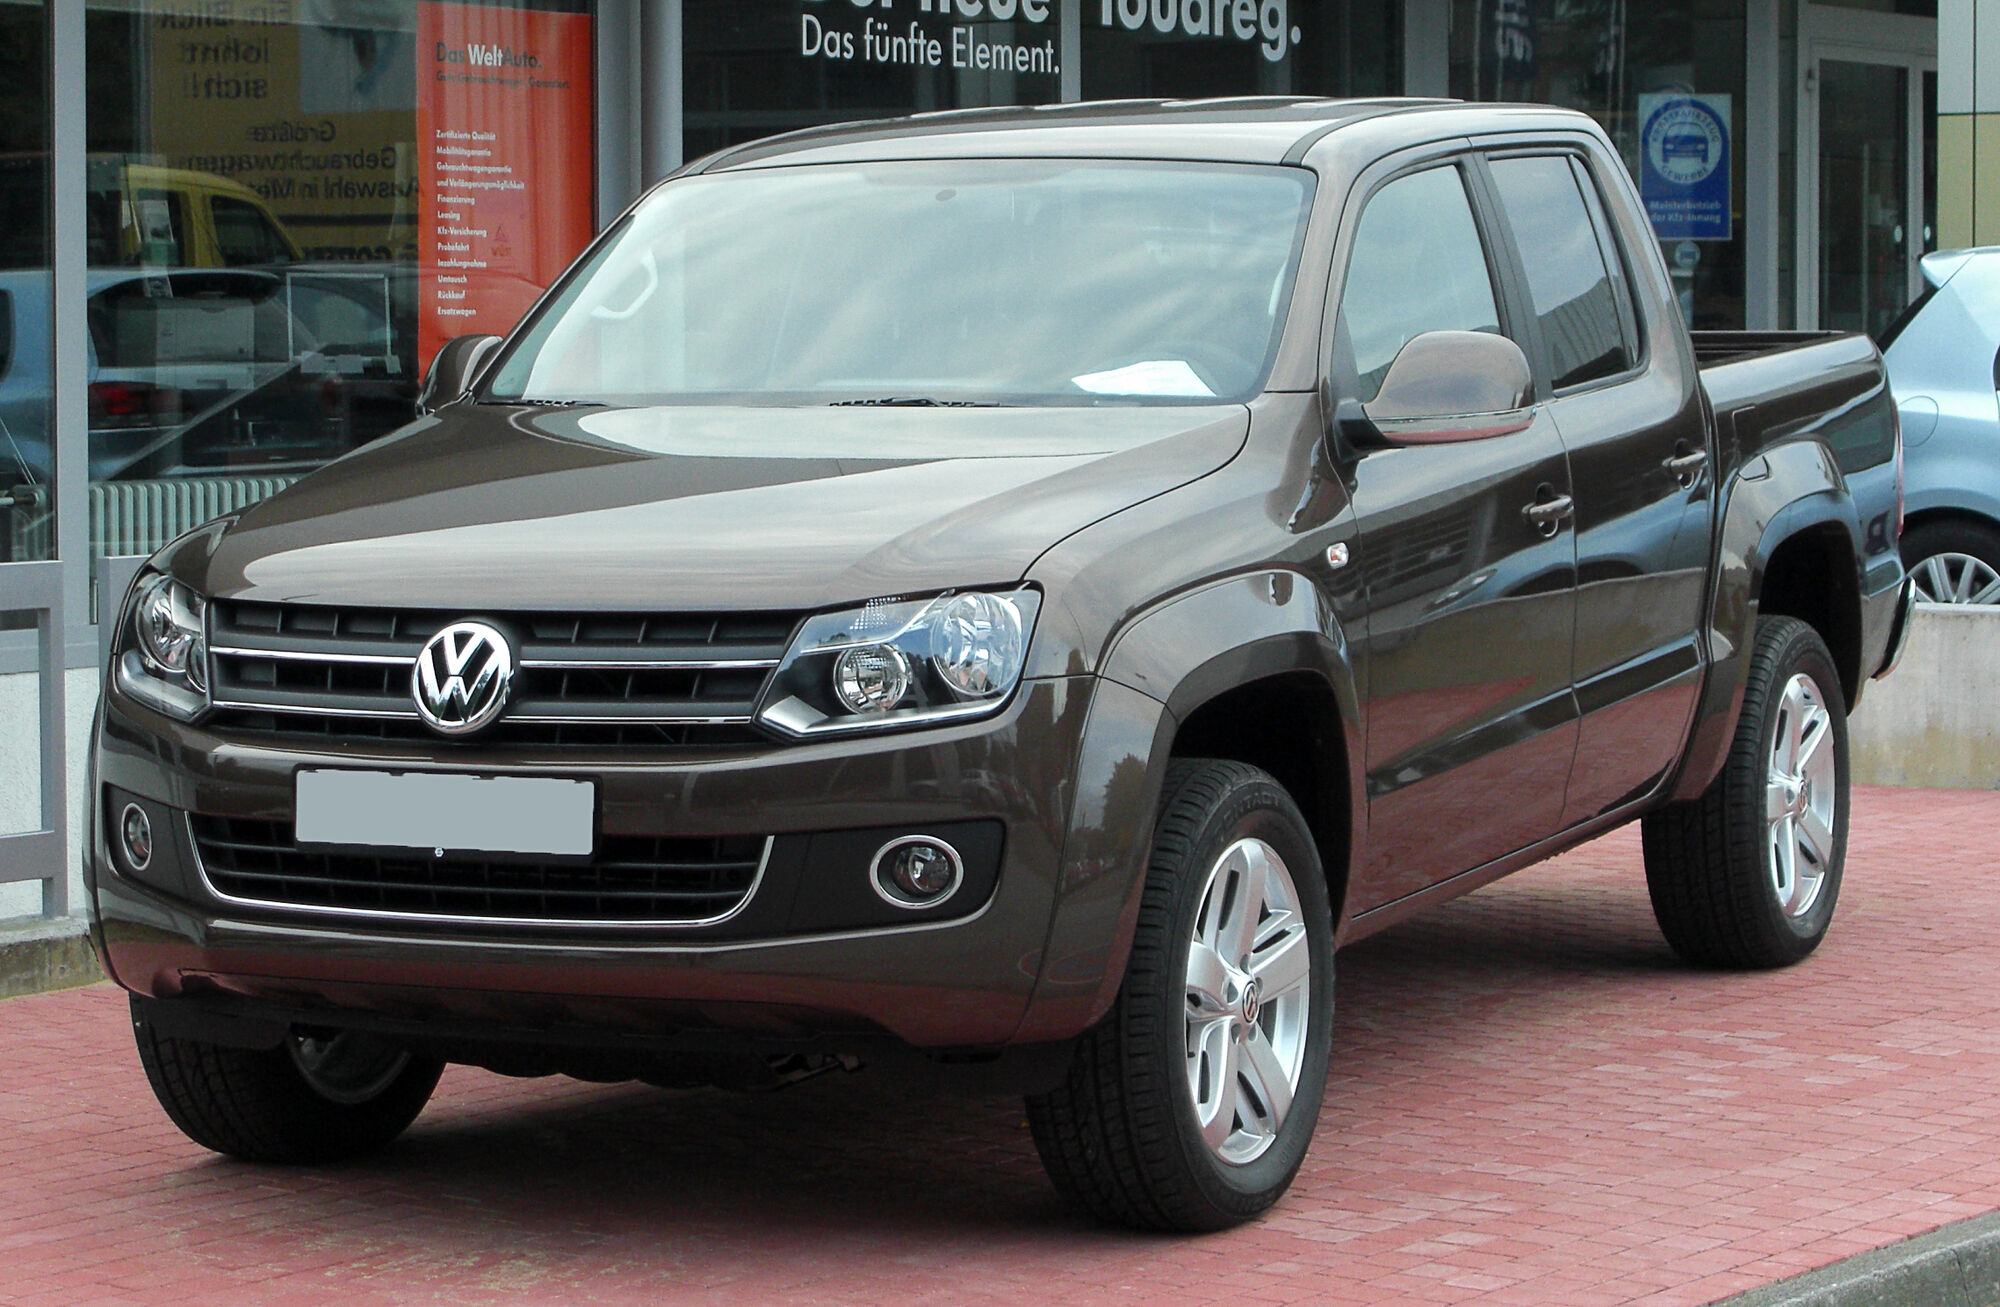 volkswagen amarok tractor construction plant wiki. Black Bedroom Furniture Sets. Home Design Ideas